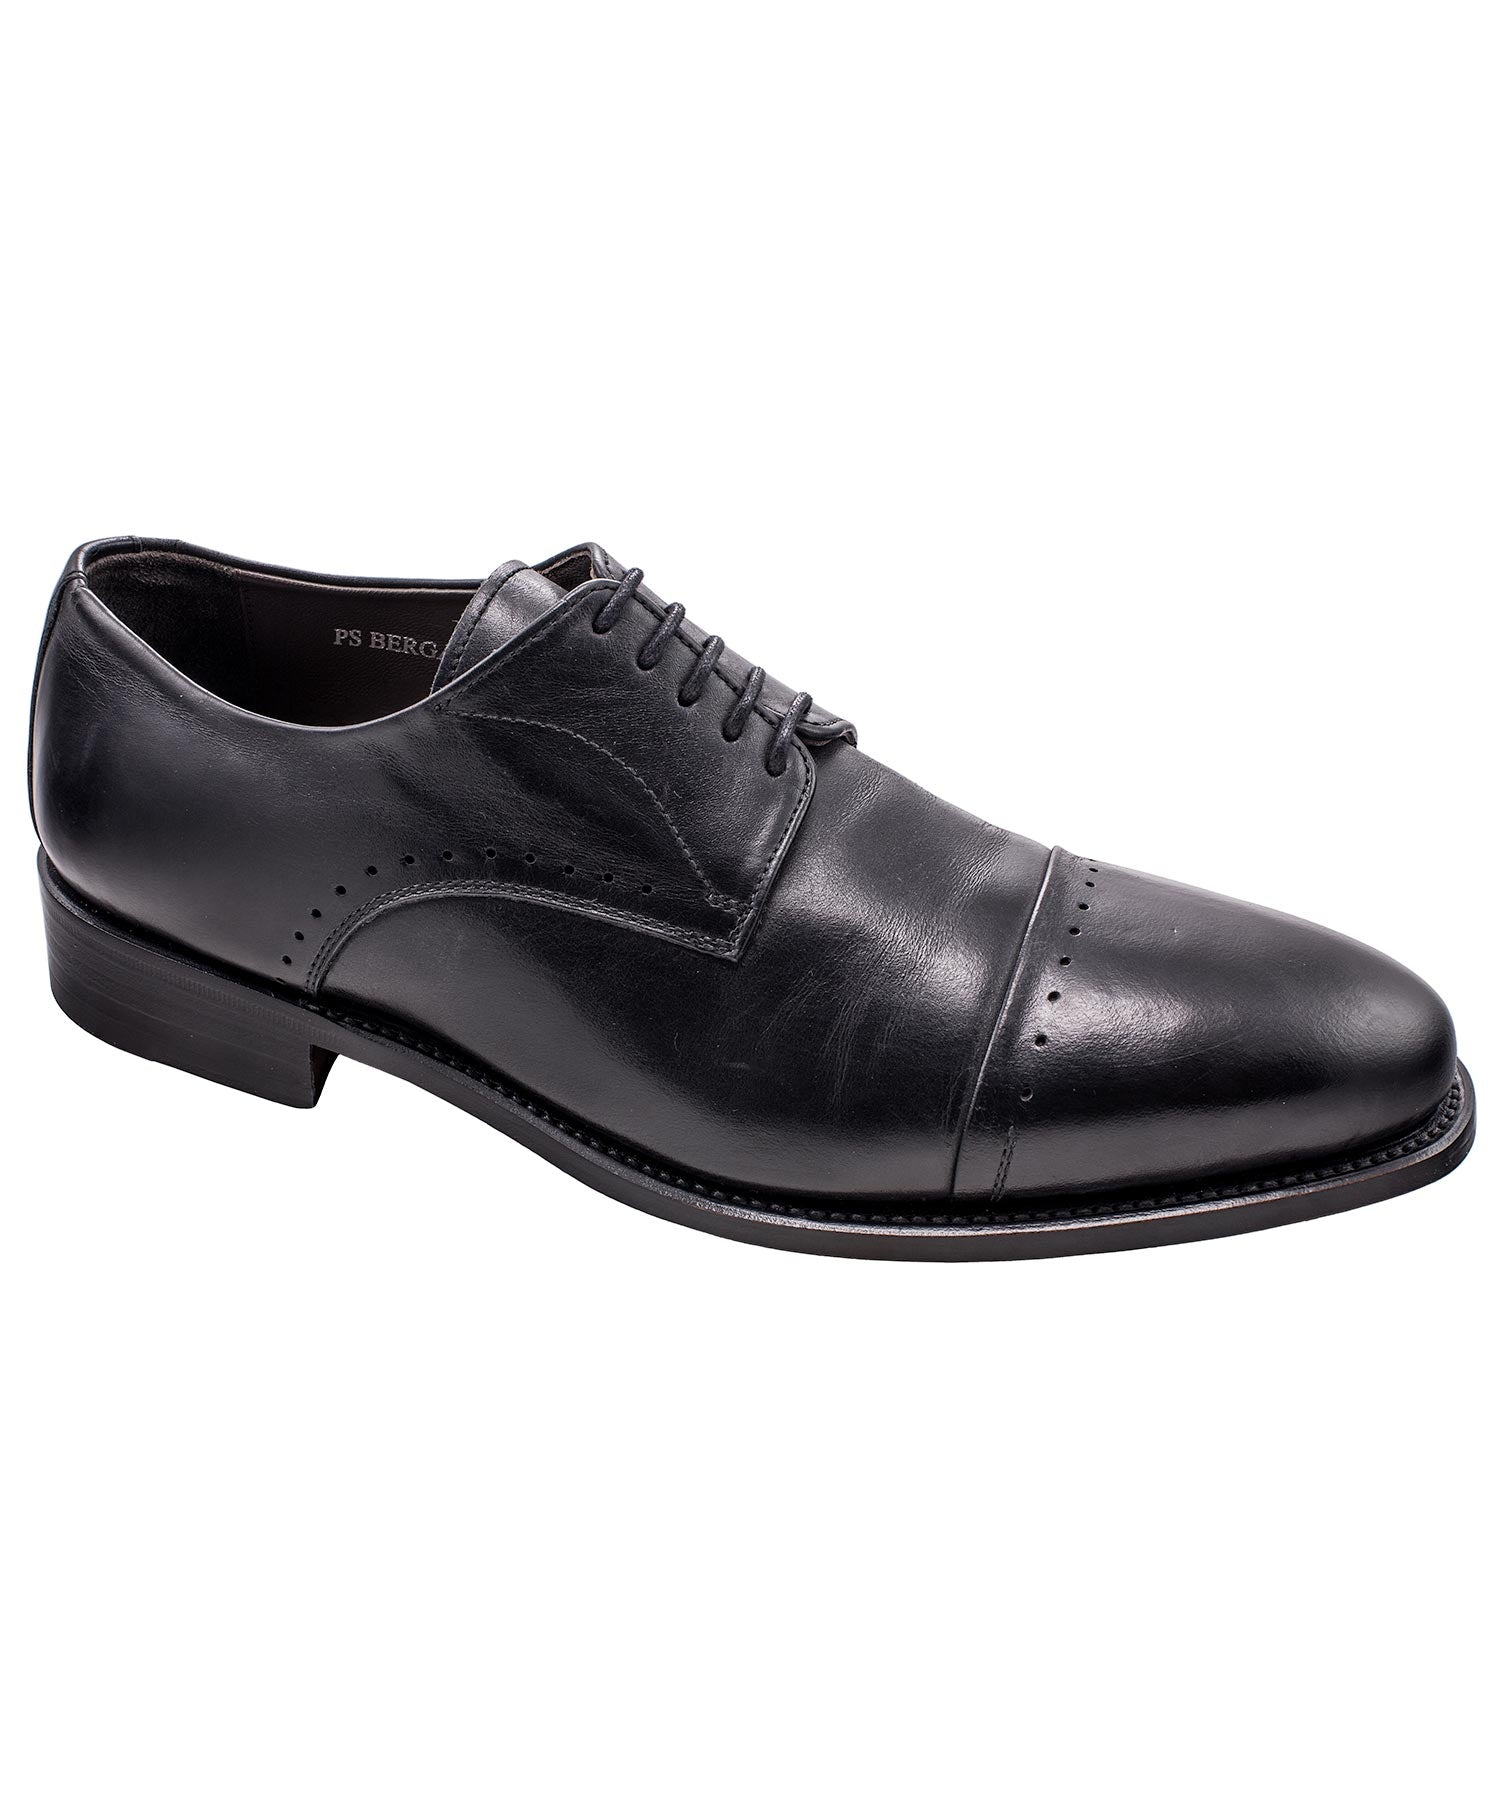 Bergamo Calf Black Dress Shoe